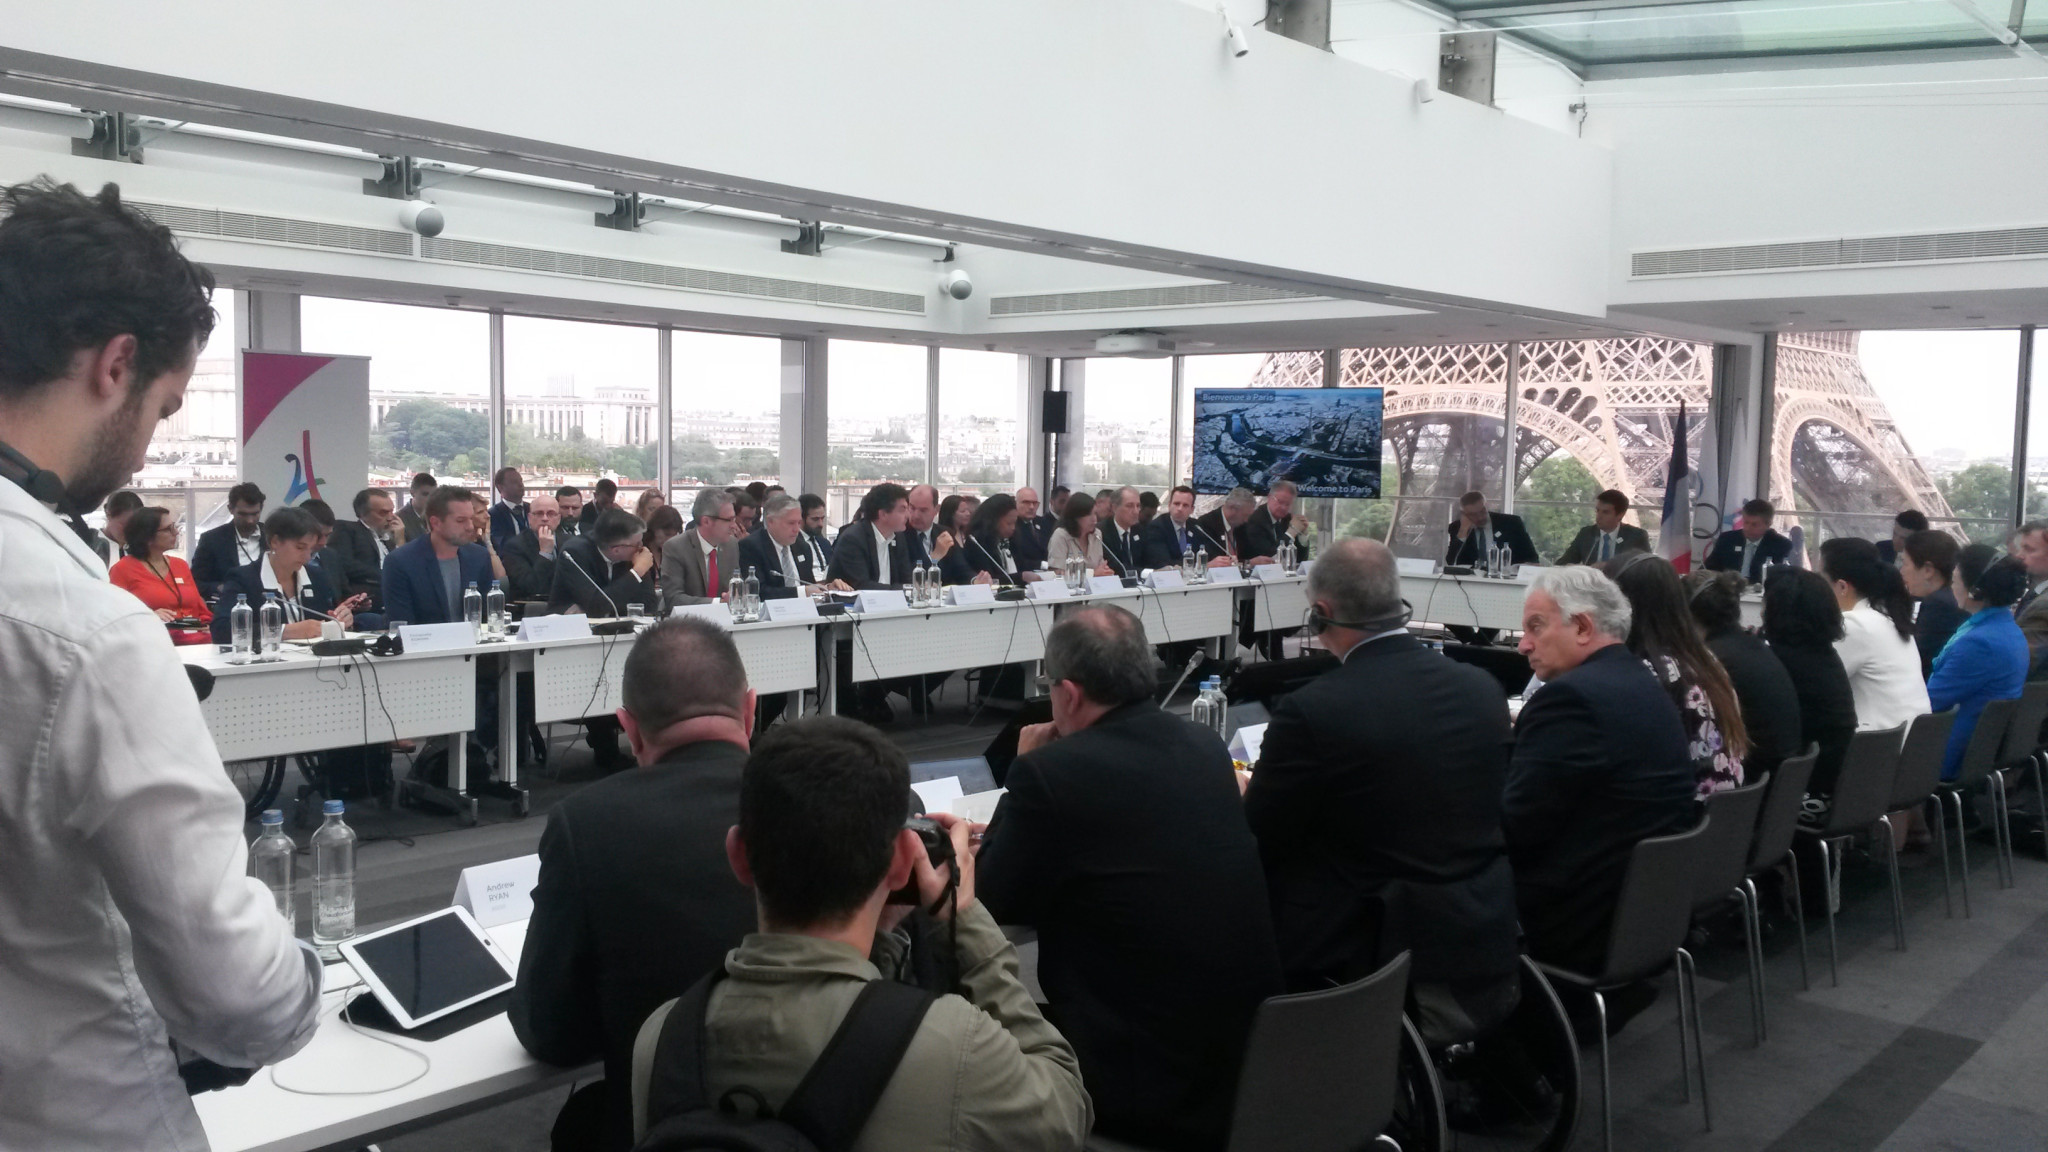 IOC Coordination Commission members and Paris 2024 representatives hold a morning meeting in the panoramic conference room at the top of the Hotel Pullman Paris Tour Eiffel ©ITG